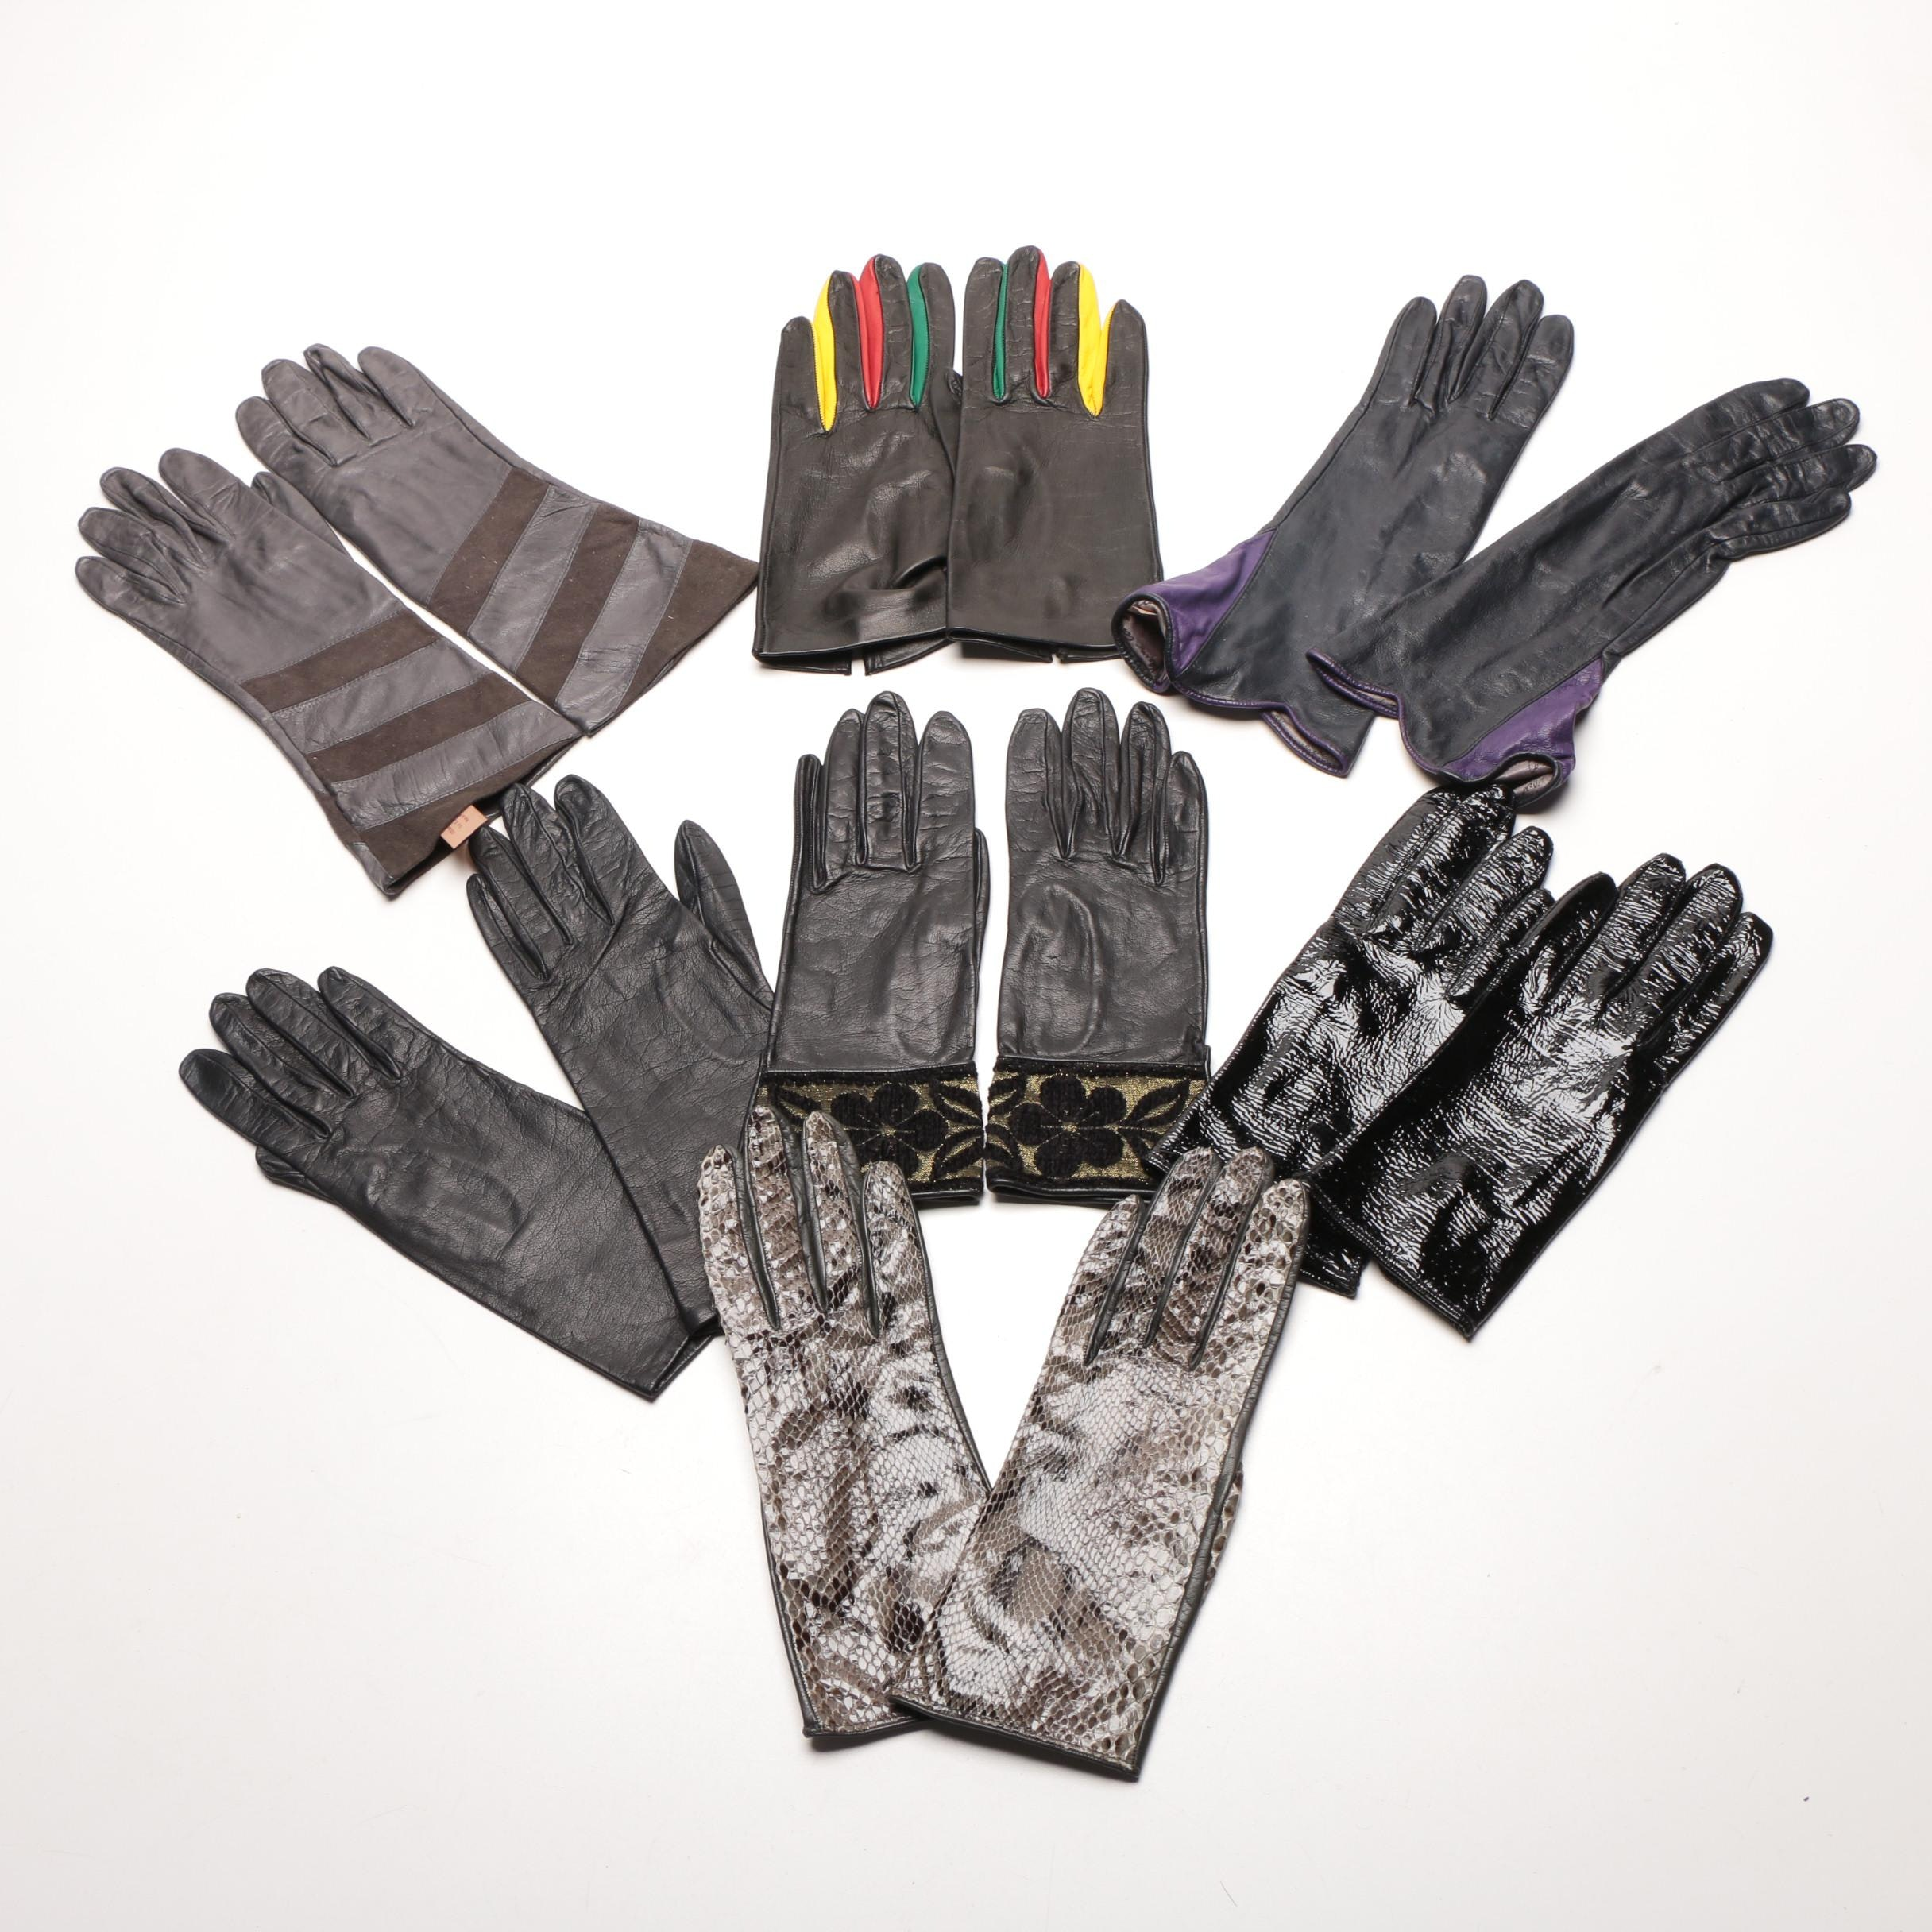 Assortment of Leather Gloves